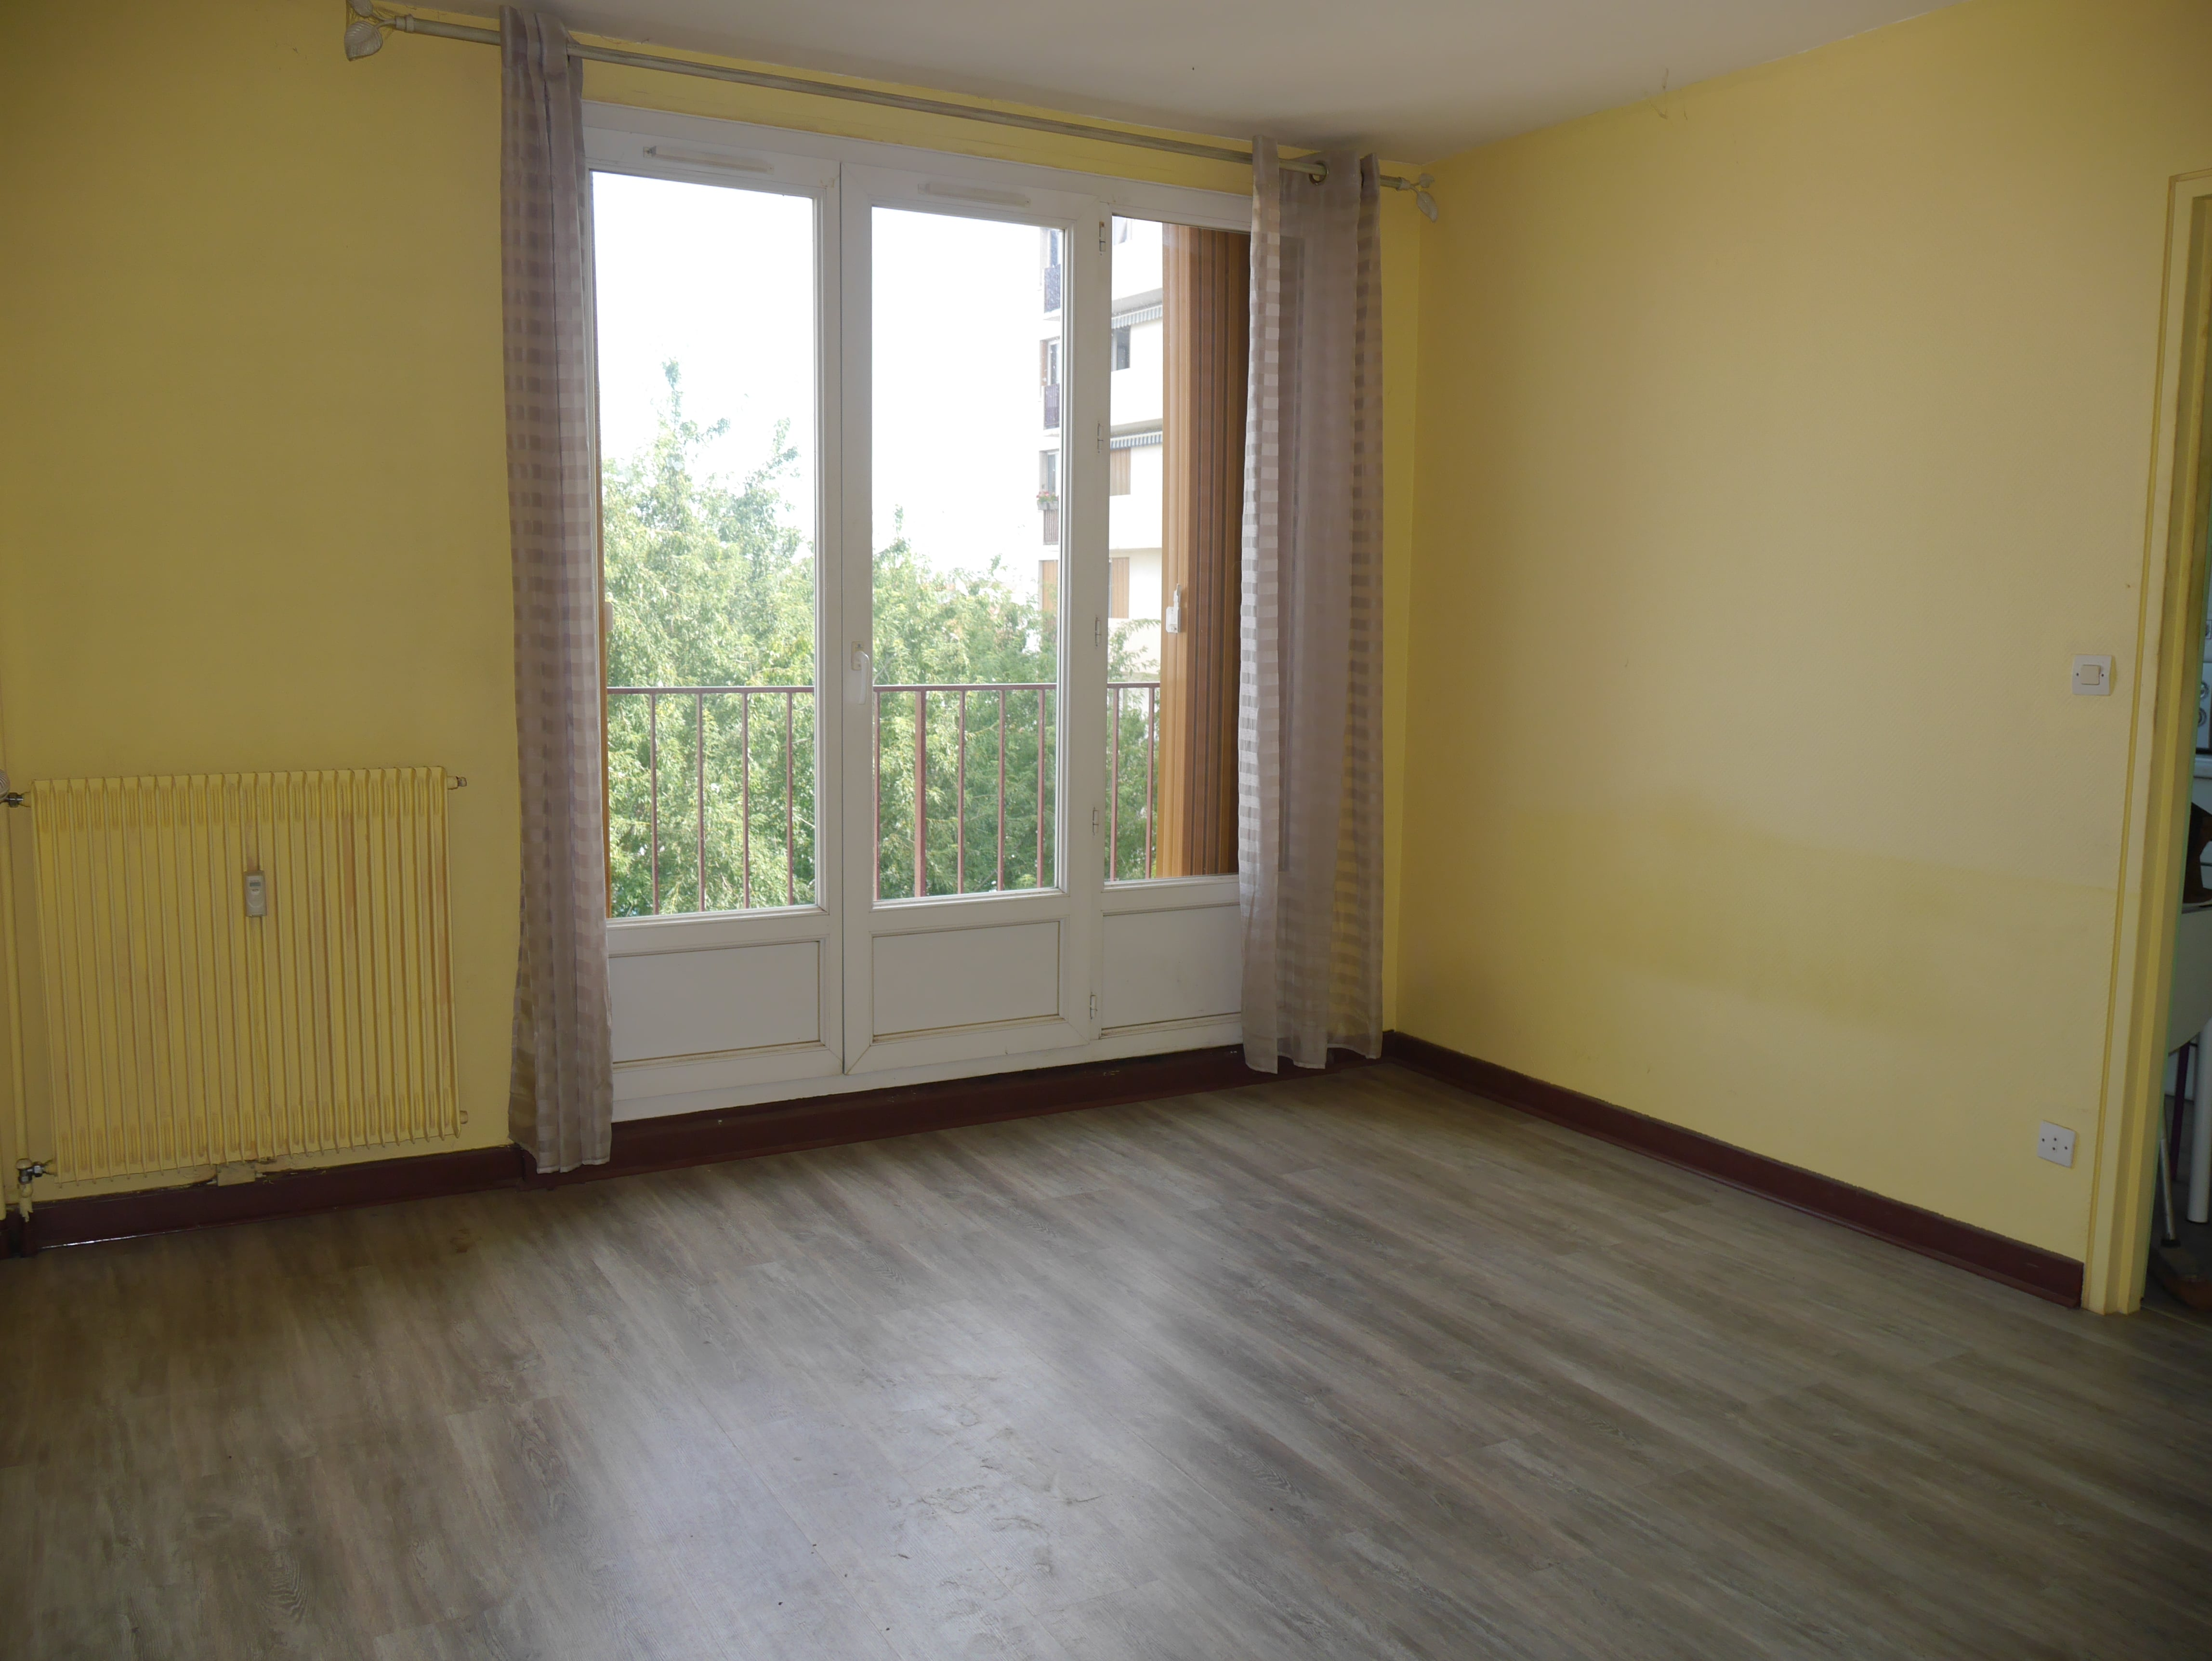 Damonte LOCATION APPARTEMENT T1 CHALONS EN CHAMPAGNE G665